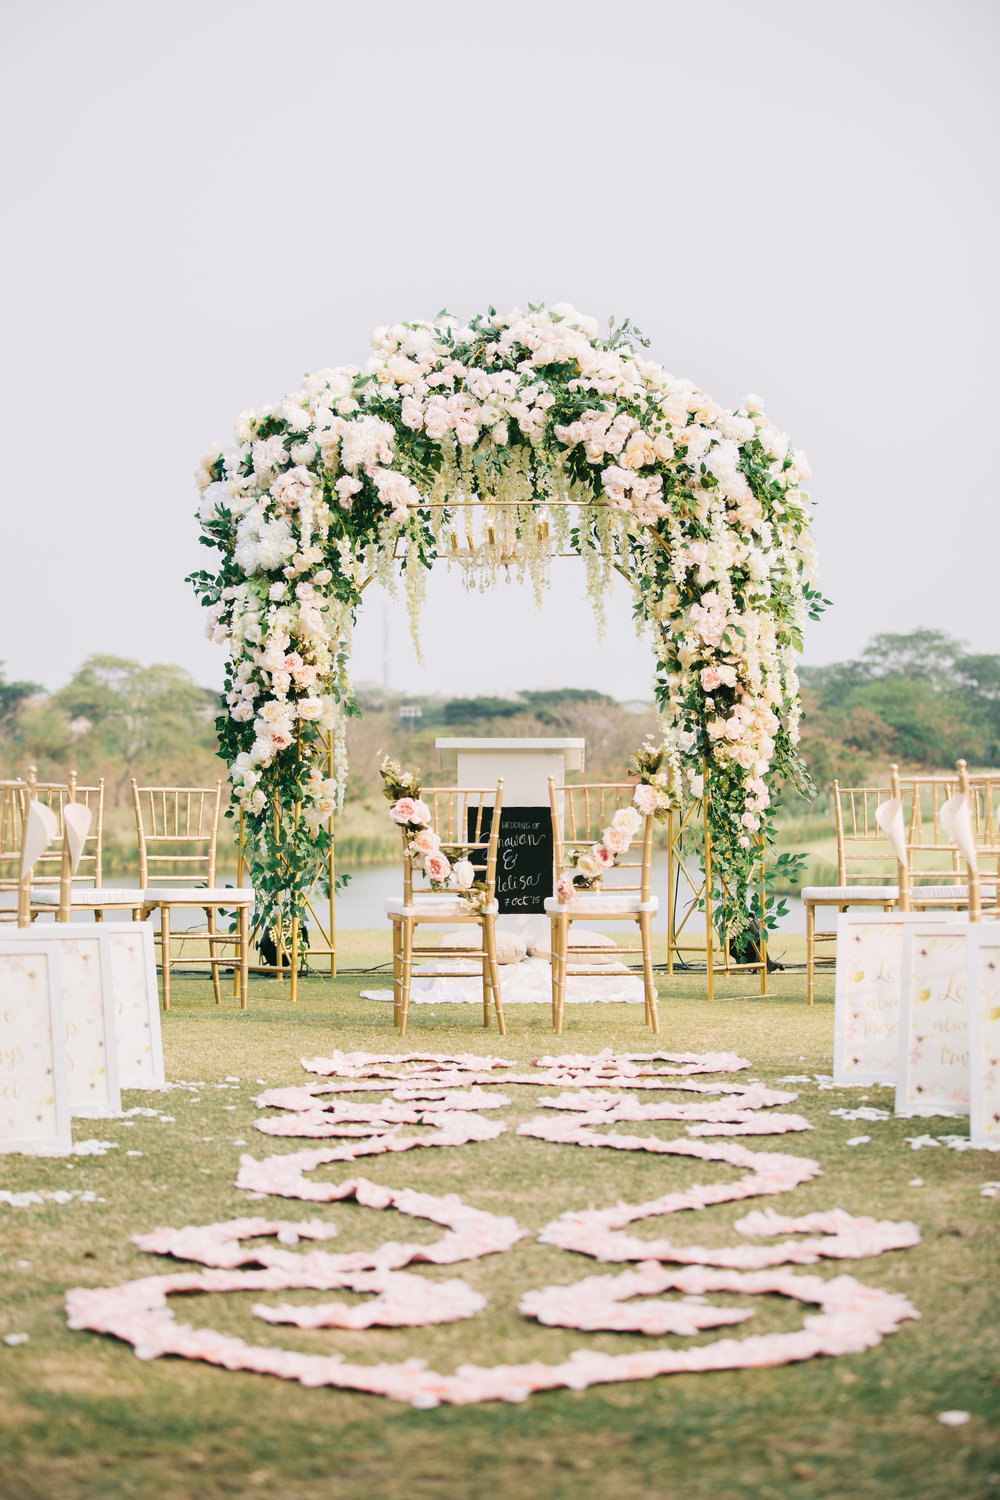 GunawanMelisaWeddingDecoration02